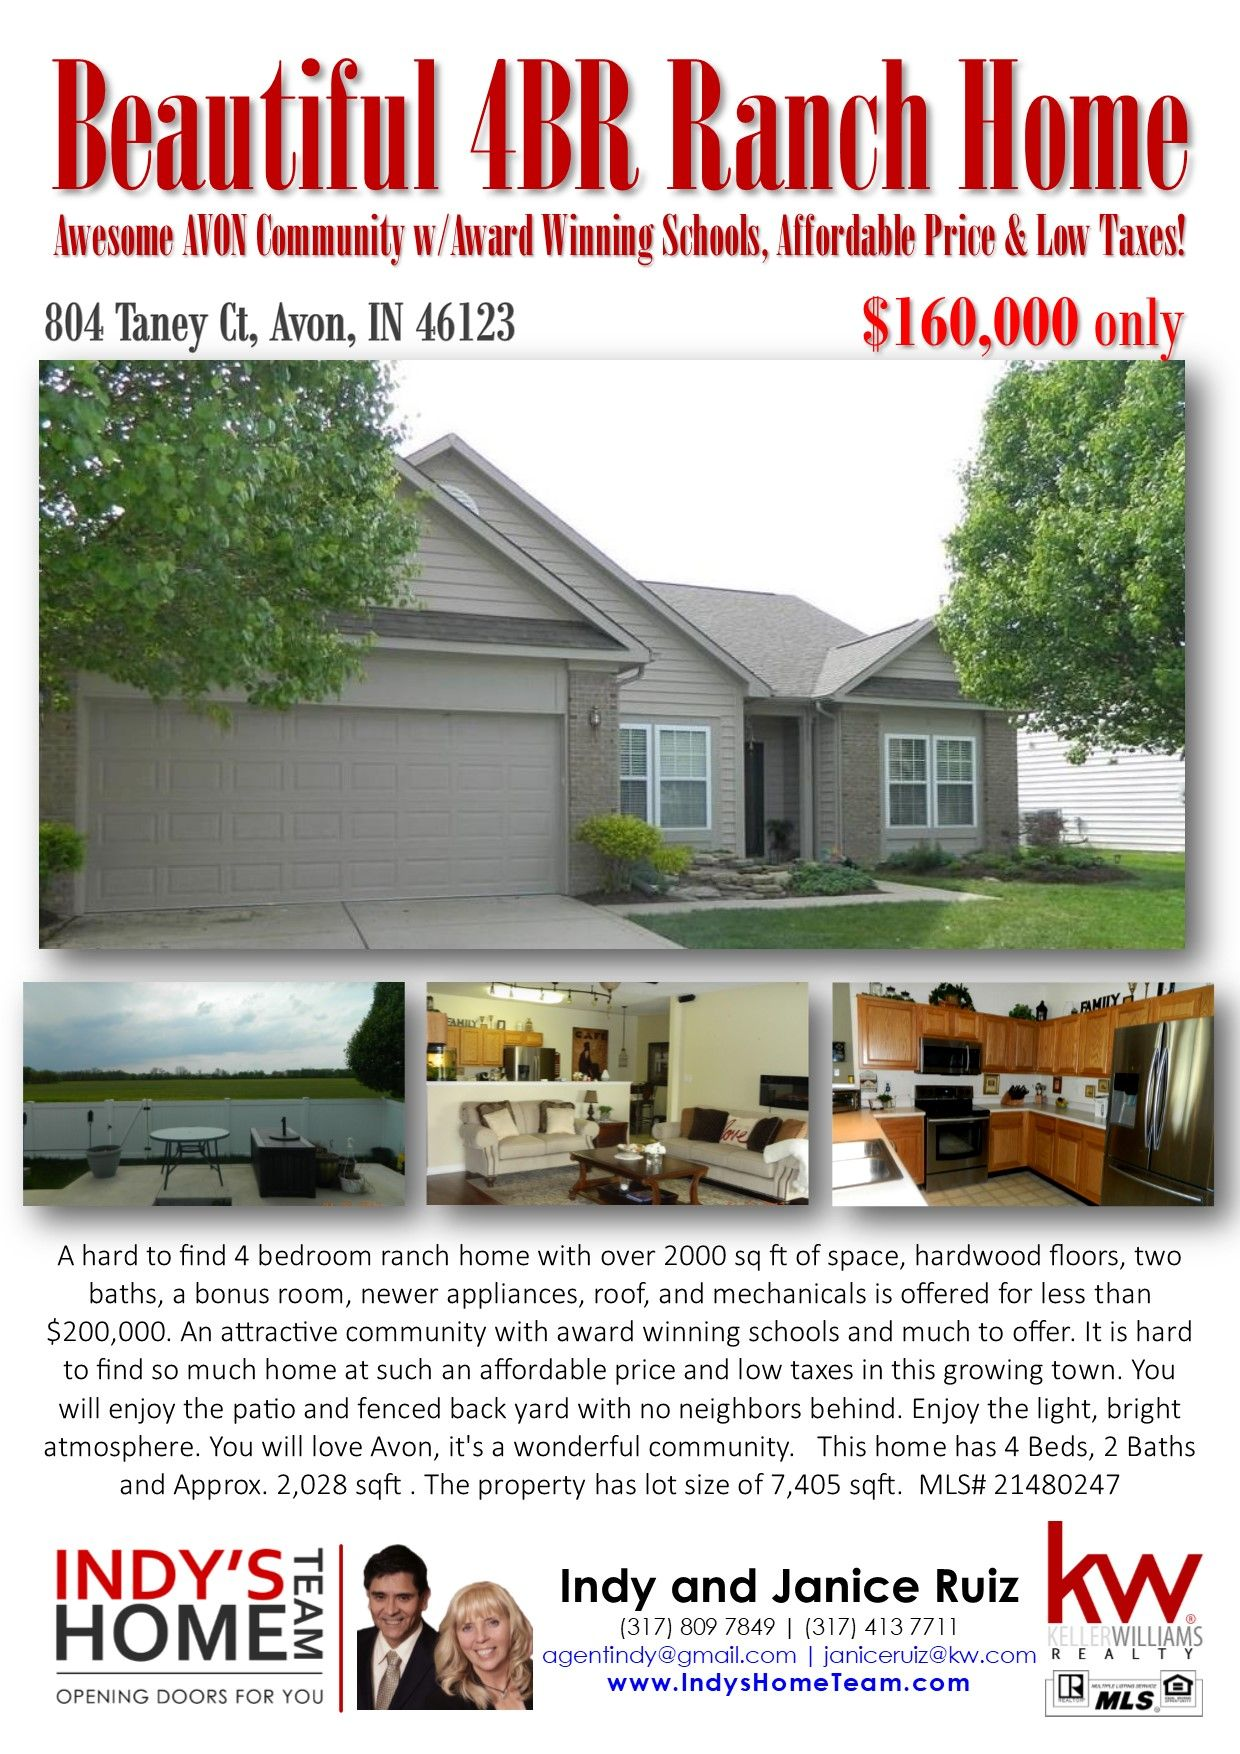 Hard To Find Ranch Home With OVER 2000 Sq Ft Living Space! Awesome AVON  Community W/Award Winning Schools! Hard To Find A Home At Such An  AFFORDABLE PRICE ...